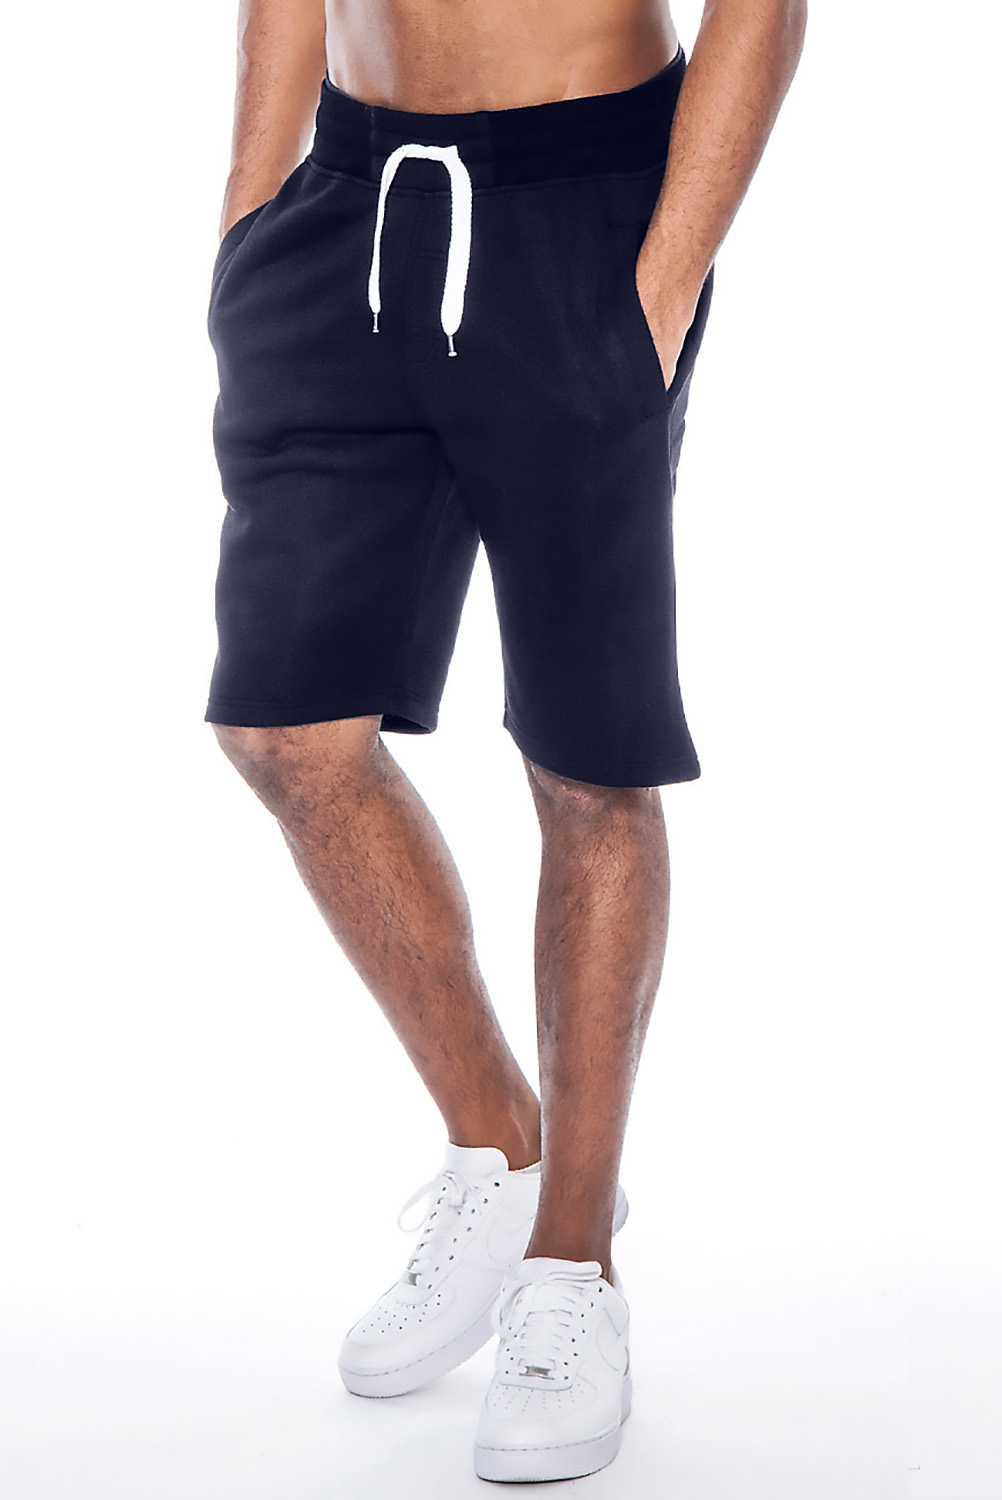 True Rock Men's William Fleece Casual Shorts | eBay